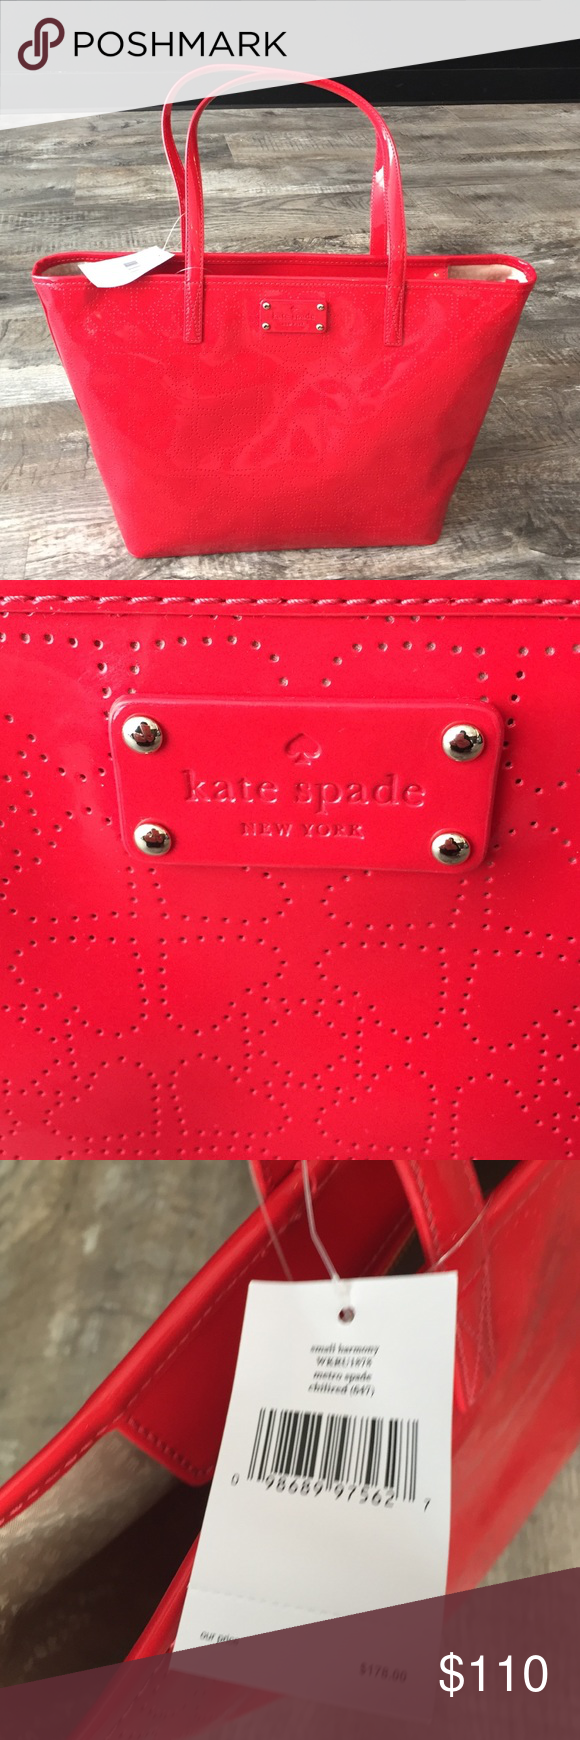 1day SALE Kate spade harmony tote nwt handbag Kate spade red harmony tote nwt handbag purse . Beautiful brand new bag with tags retail 178. Pretty inside lining with pockets and zipper pocket inside 17 wide 10 tall x6    . Adorable spade pattern. kate spade Bags